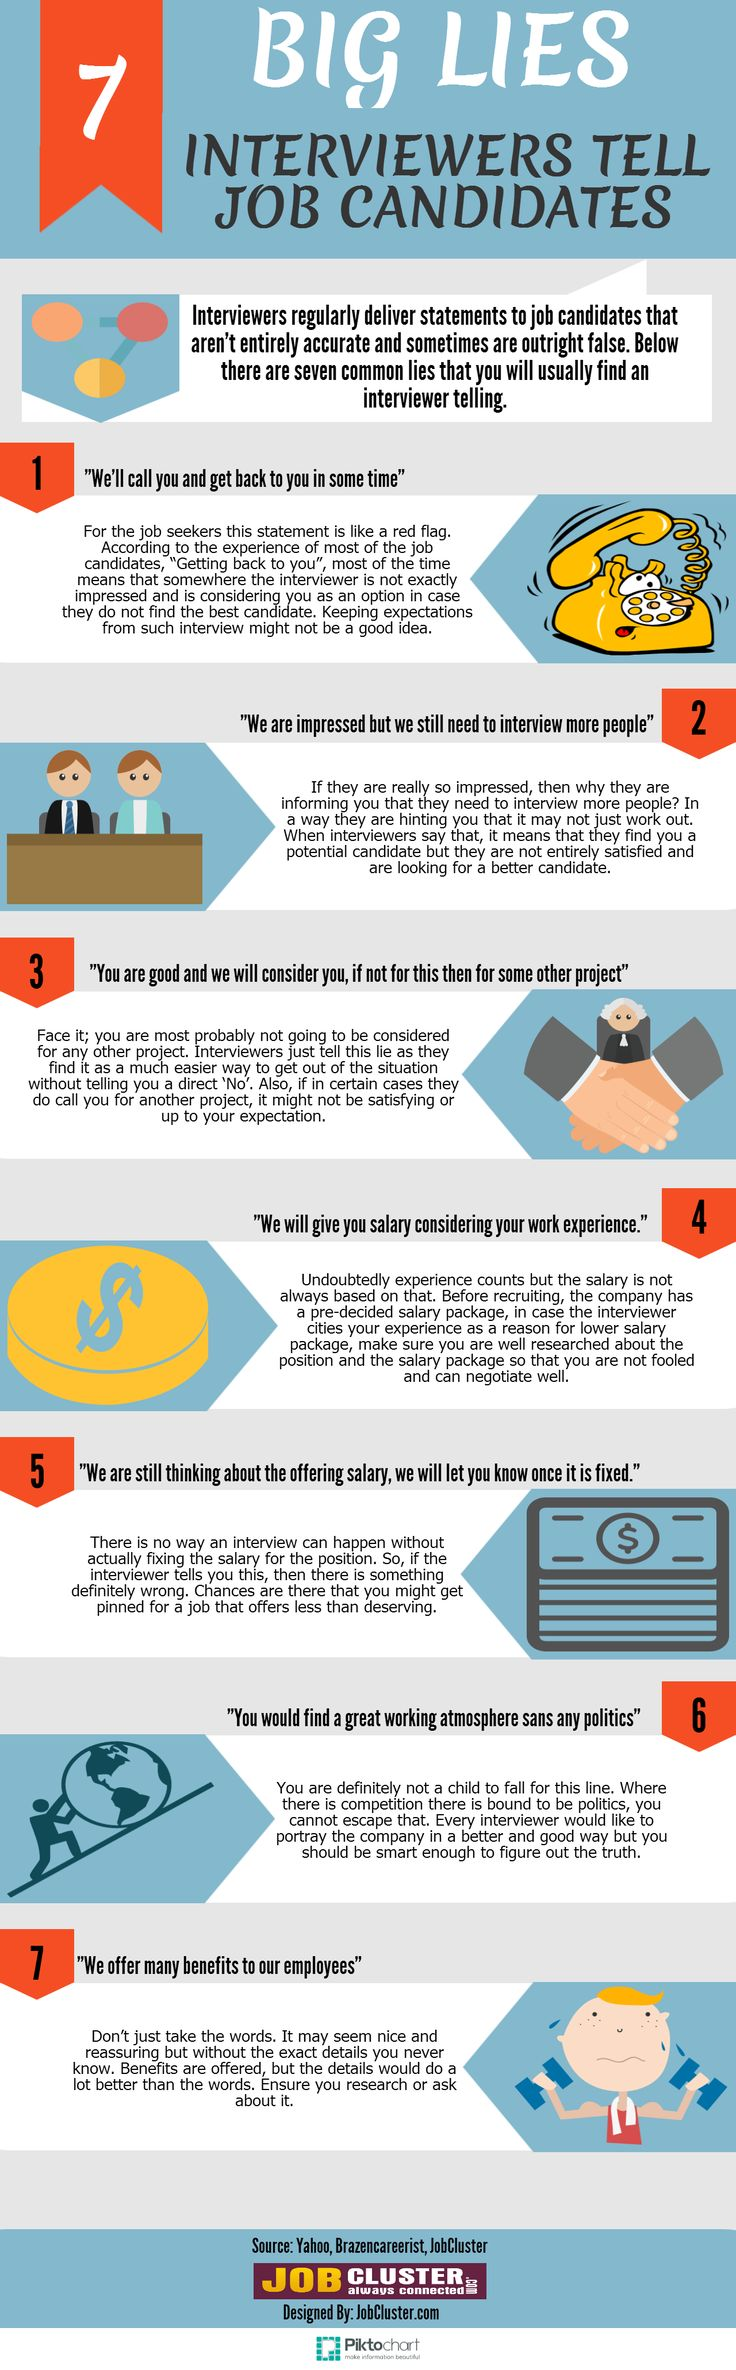 17 best images about interview tips interview interviewers tells little white lies to job candidates here are seven most common lies interviewers tell job interview resume tips